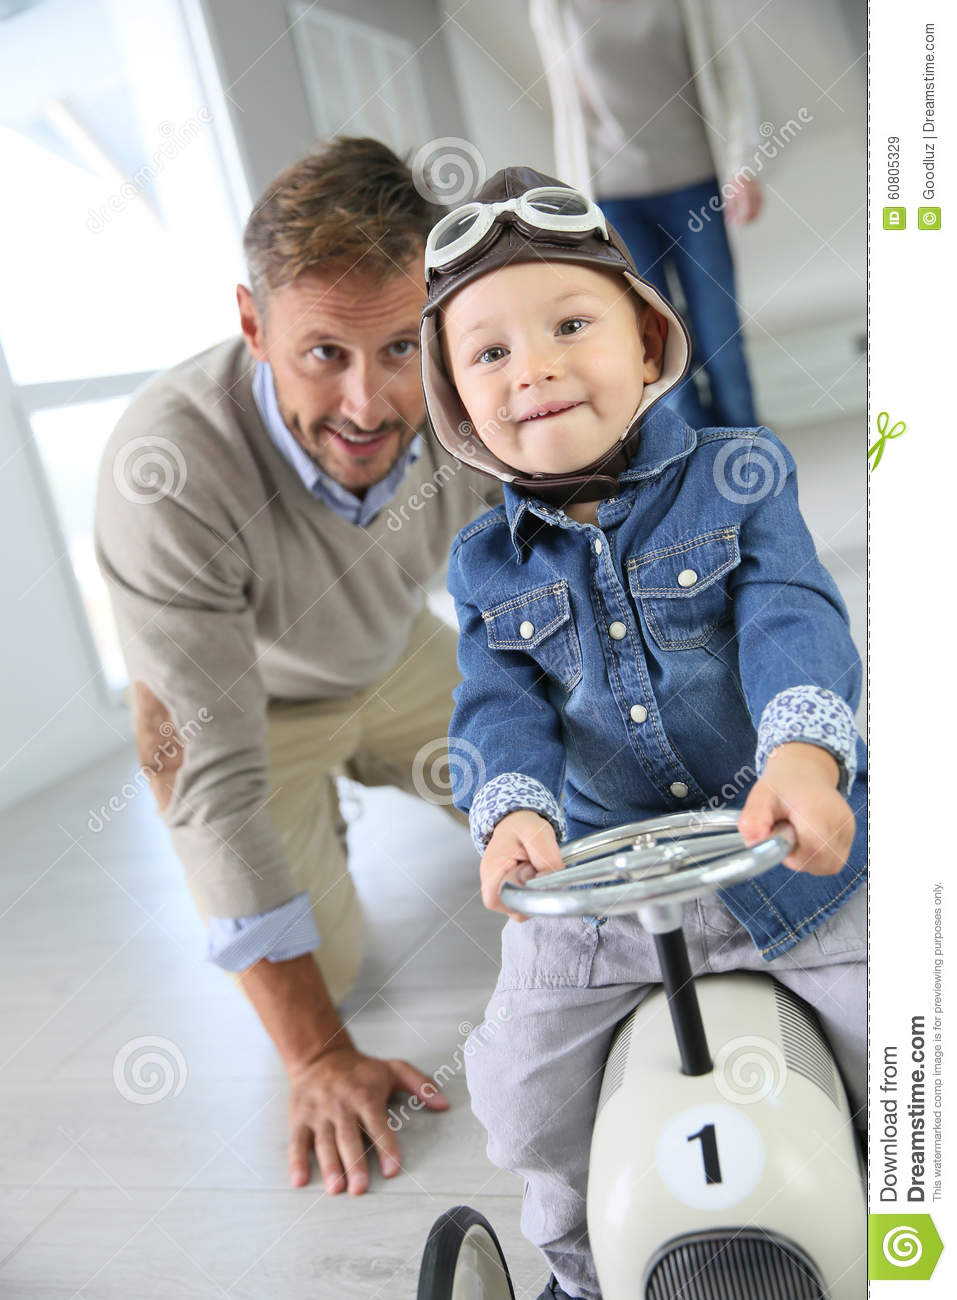 Boy Toys For Dads : Father helping his son driving car toy stock image